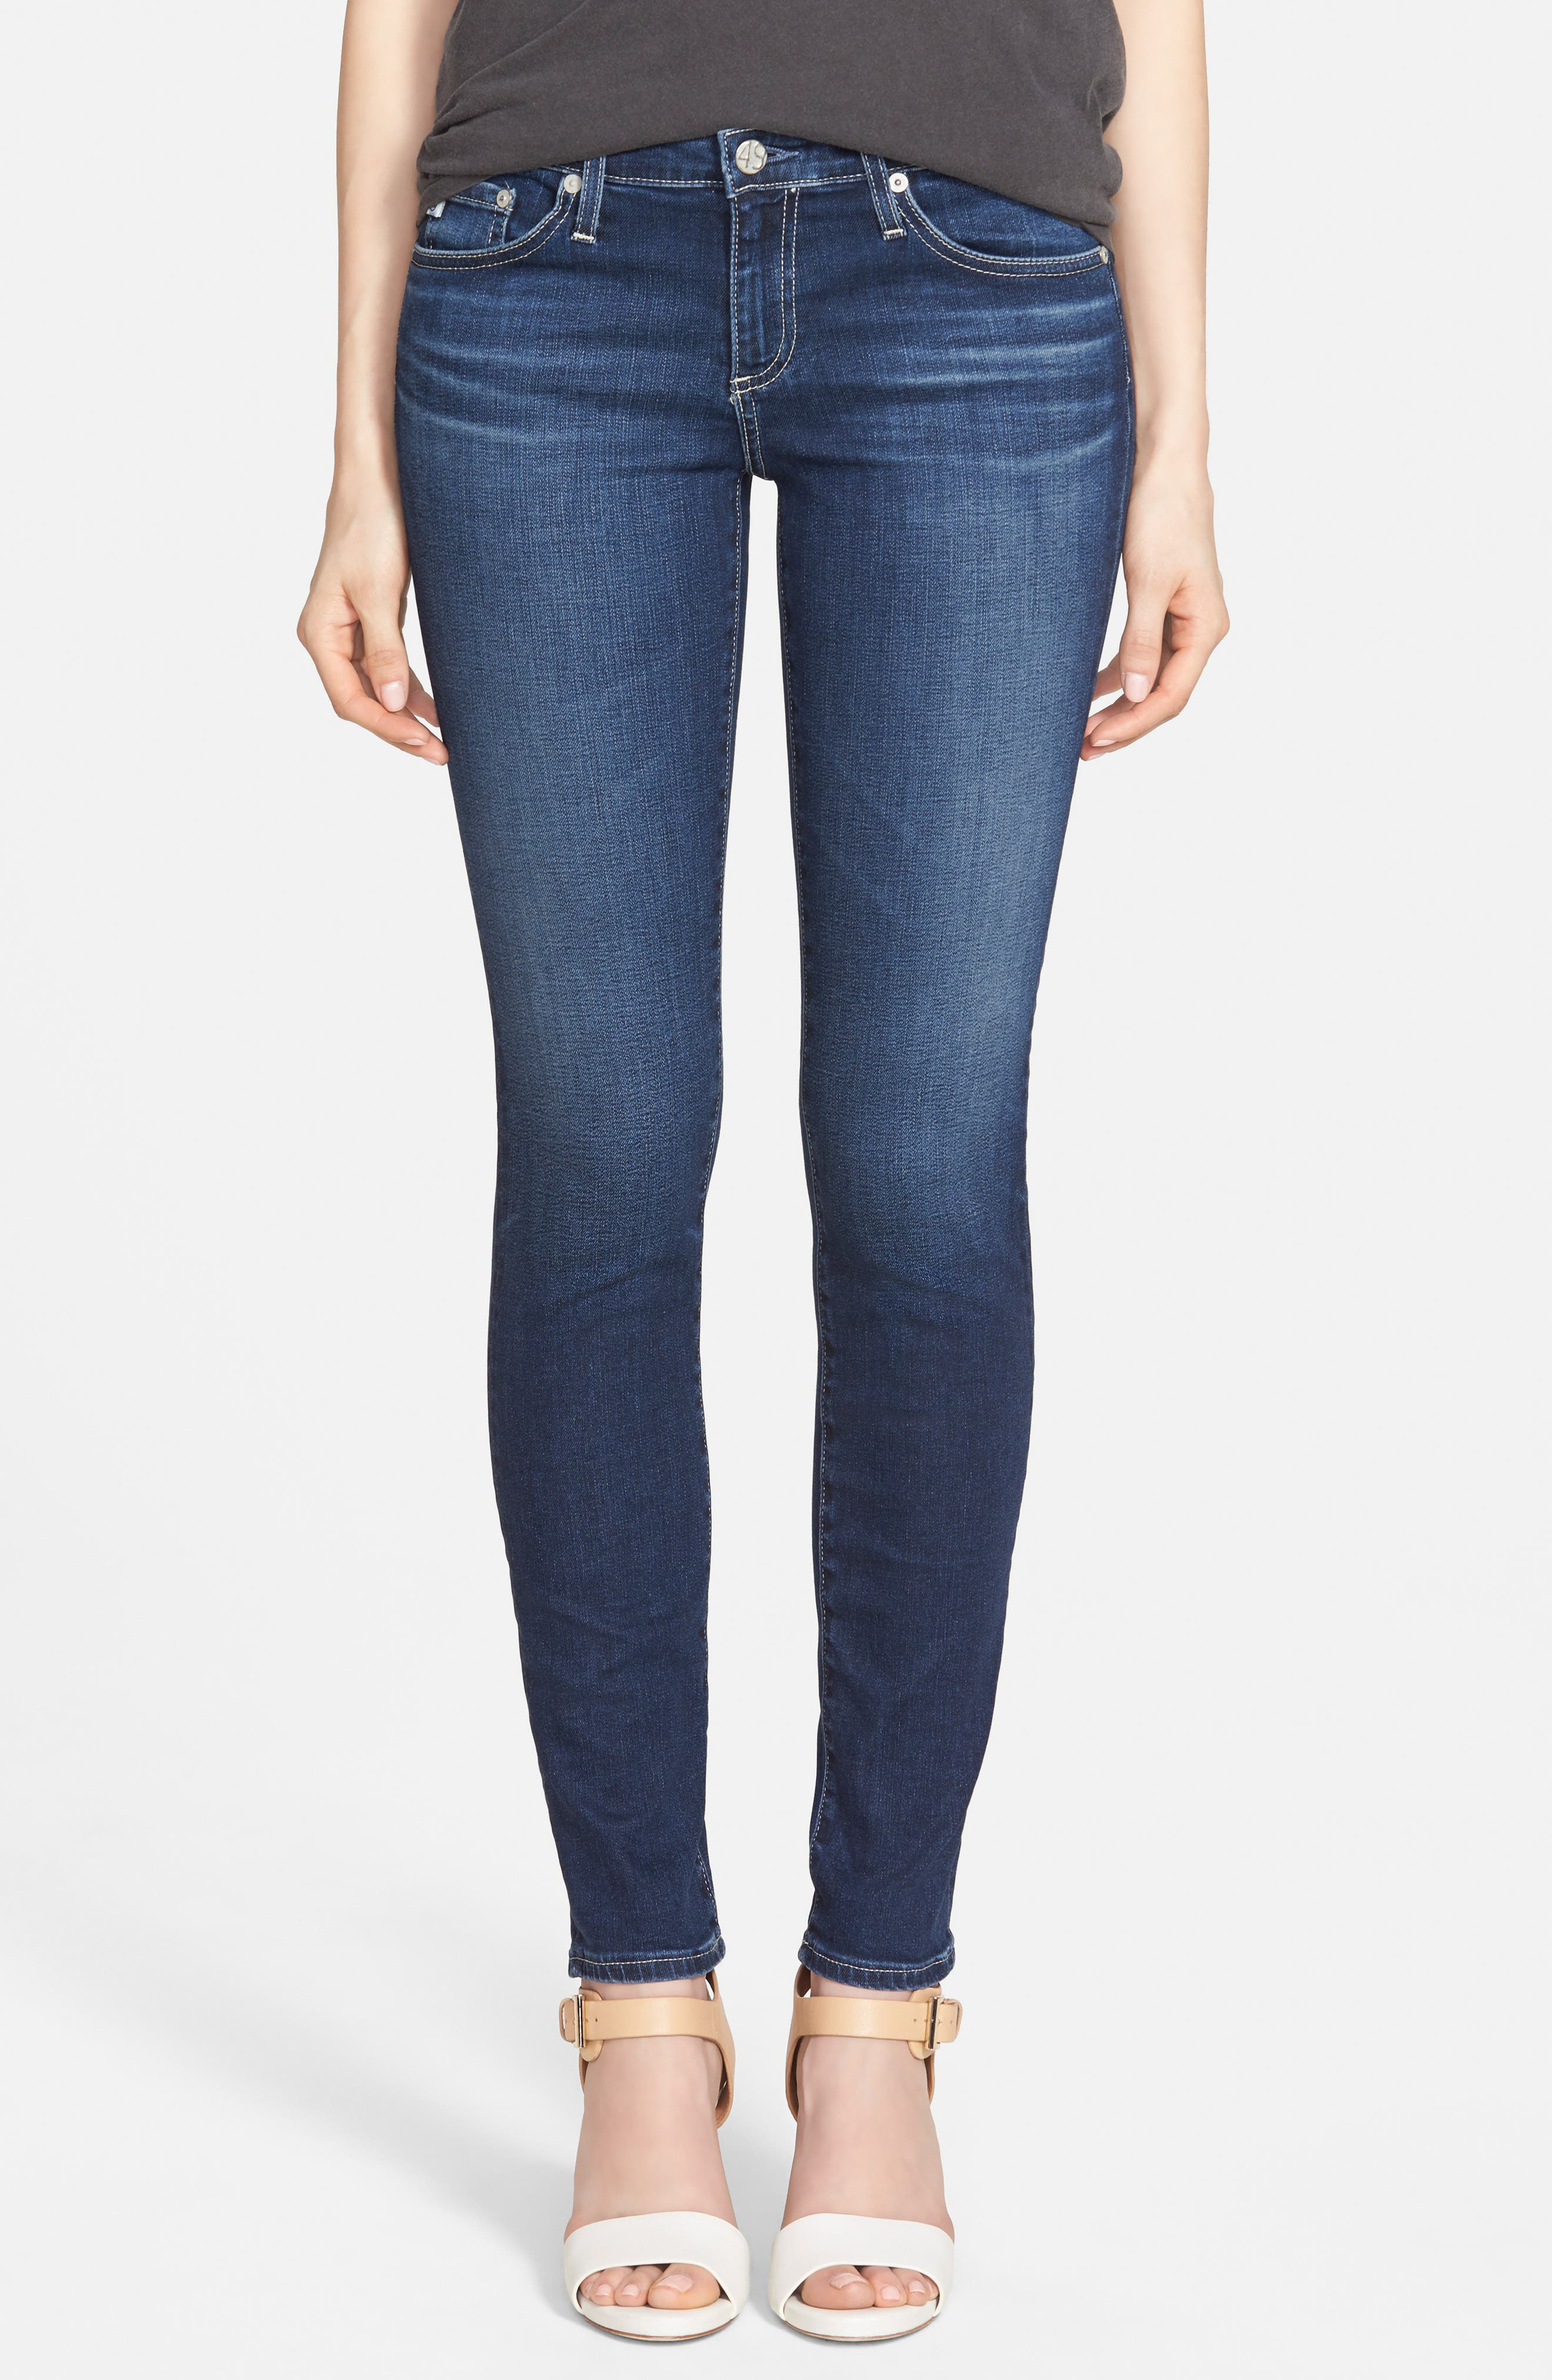 'The Stilt' Cigarette Leg Jeans,                         Main,                         color, Eleven Year Journey